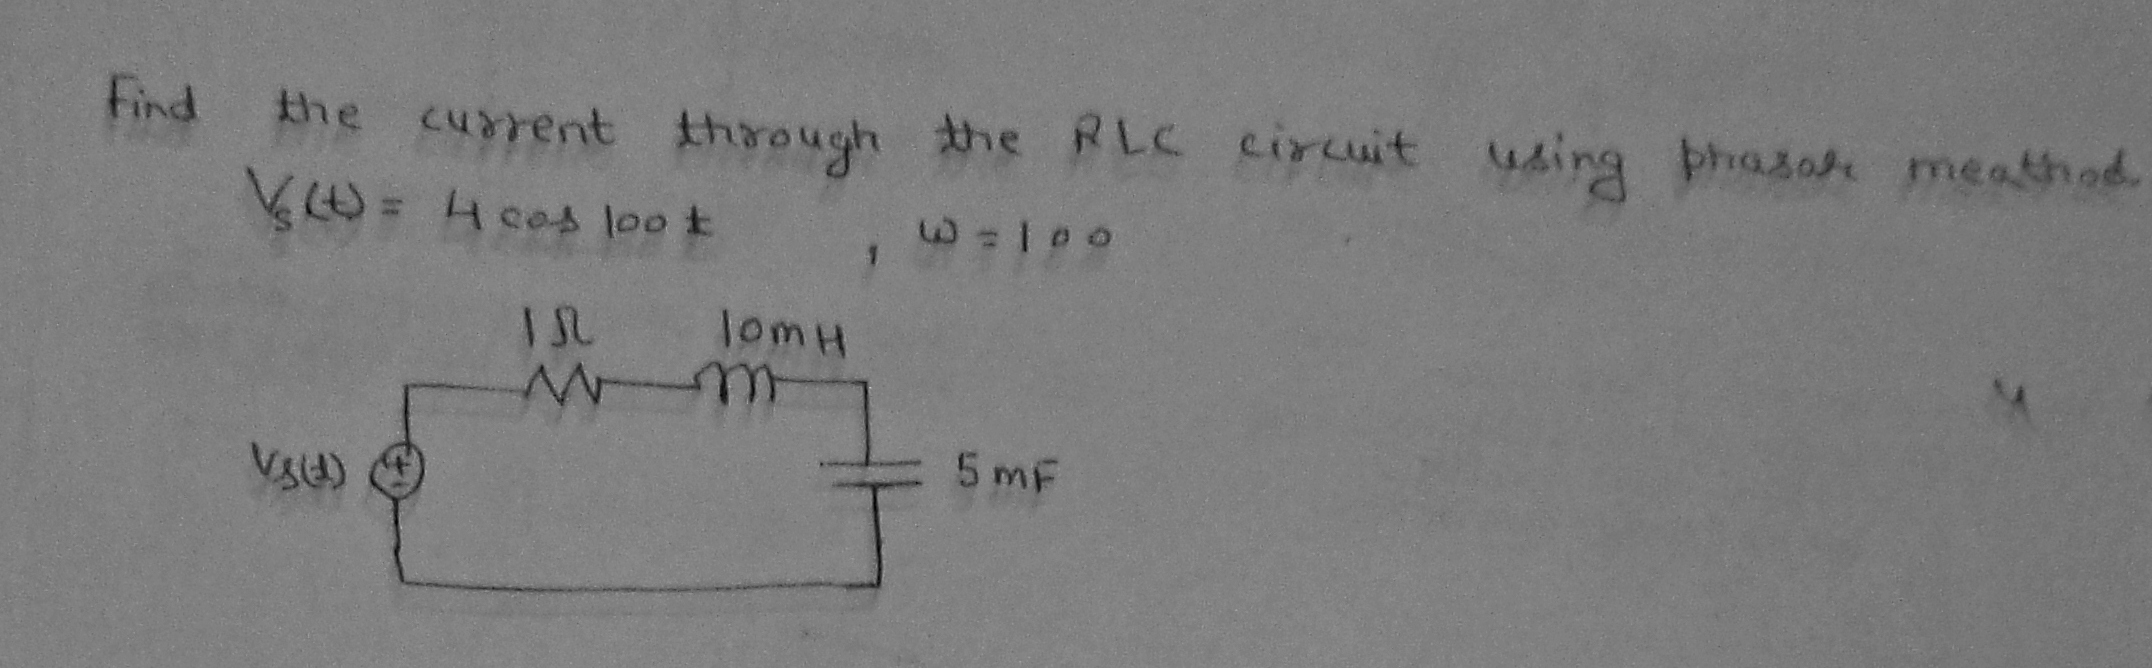 Find the current through the RLC circuit using pha